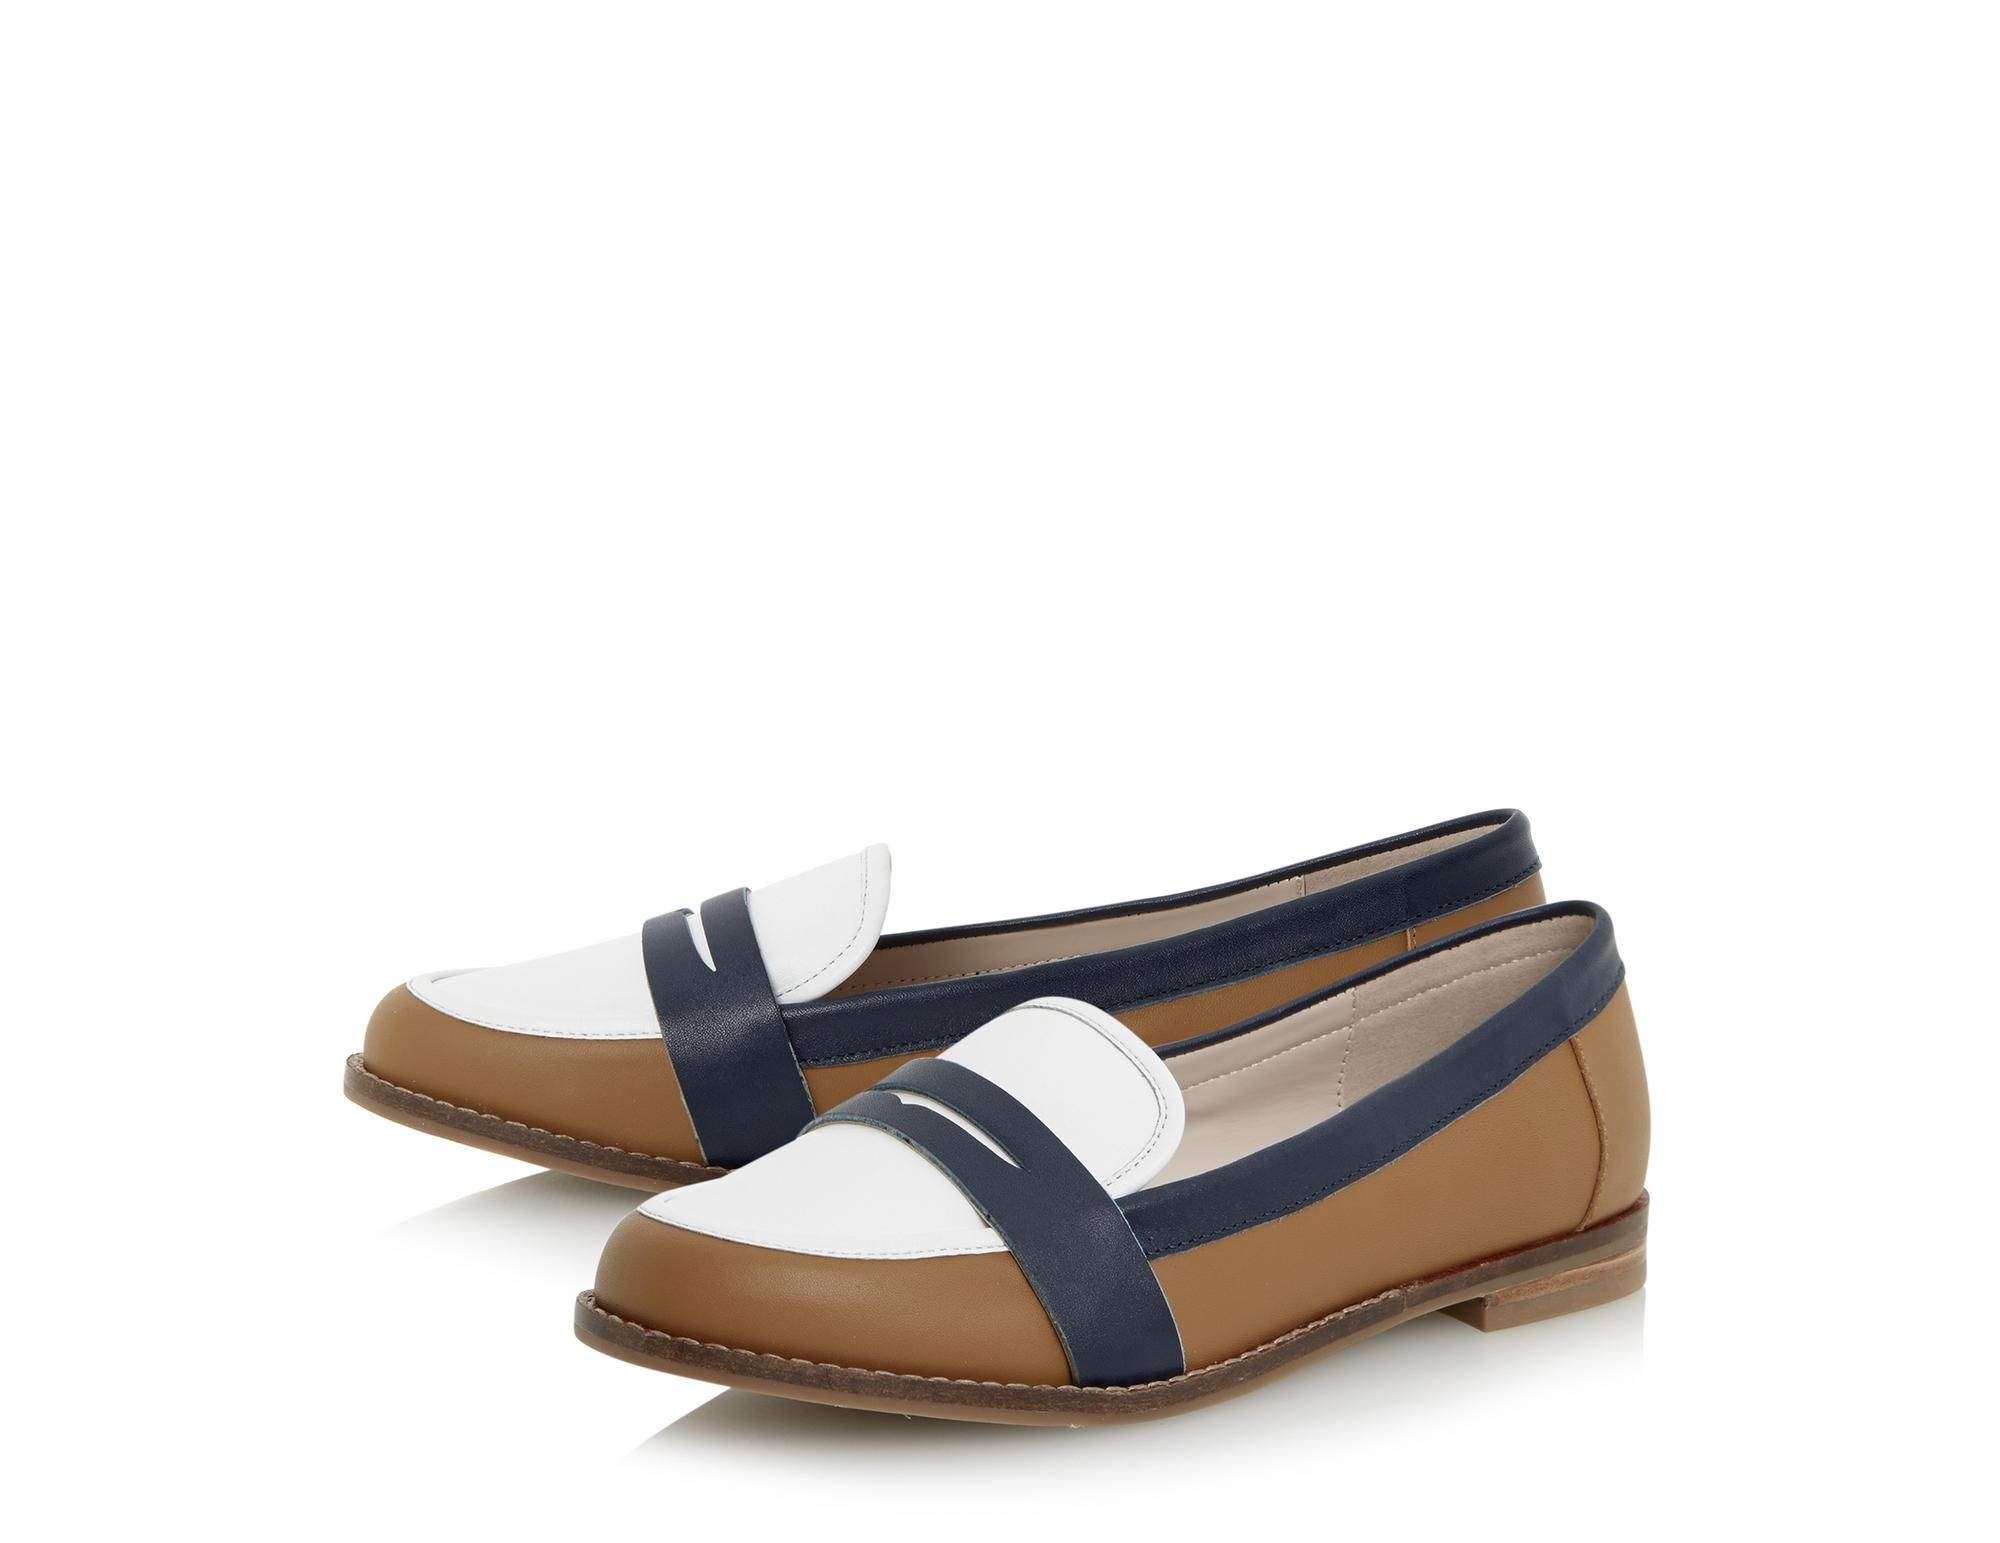 DUNE LADIES GUAPO - Round Toe Leather Penny Loafer - tan | Dune Shoes Online